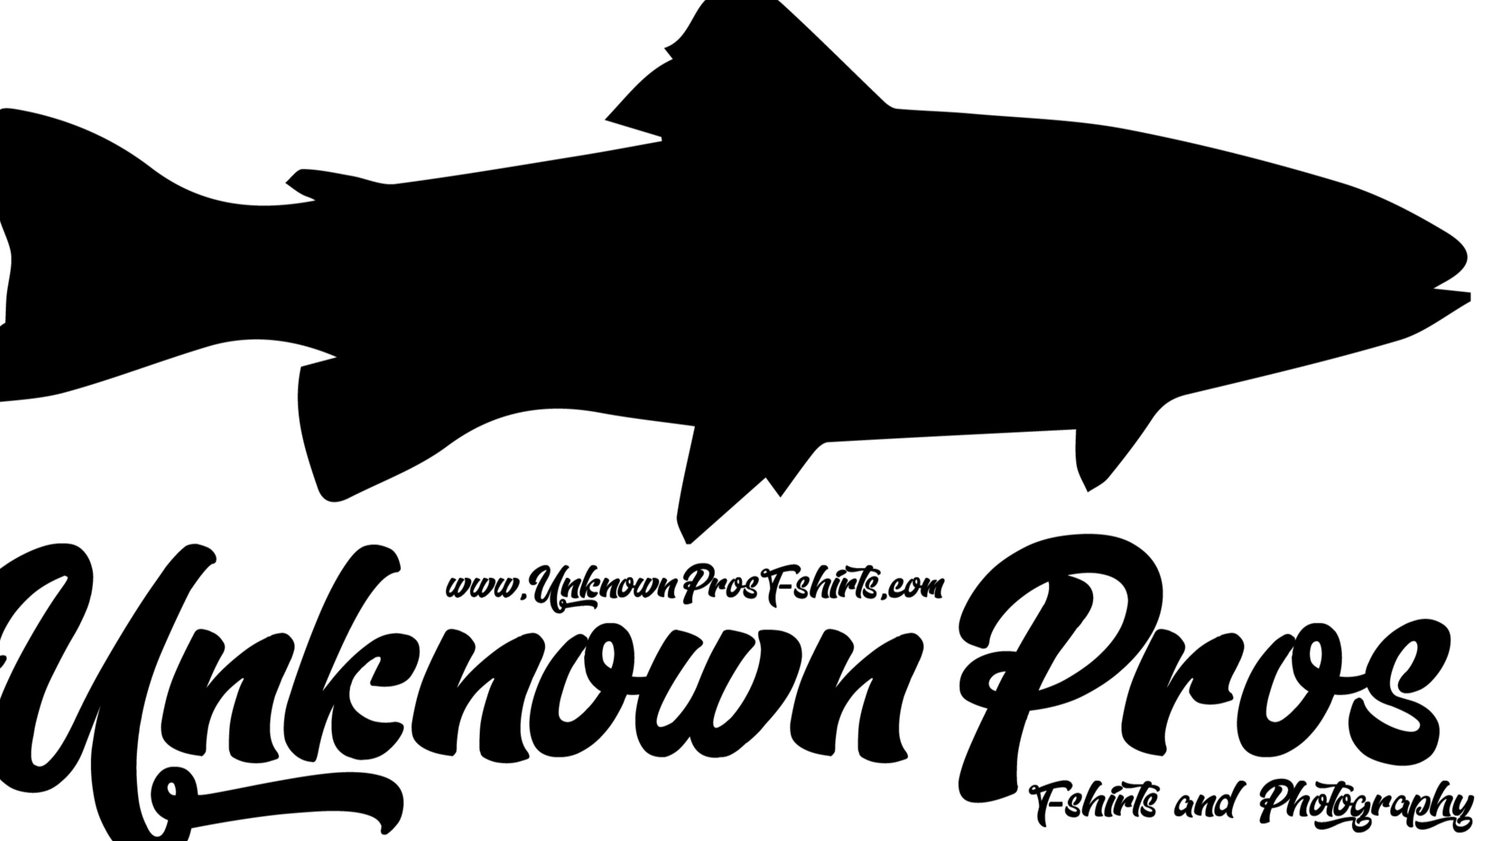 Unknownpros T-shirts